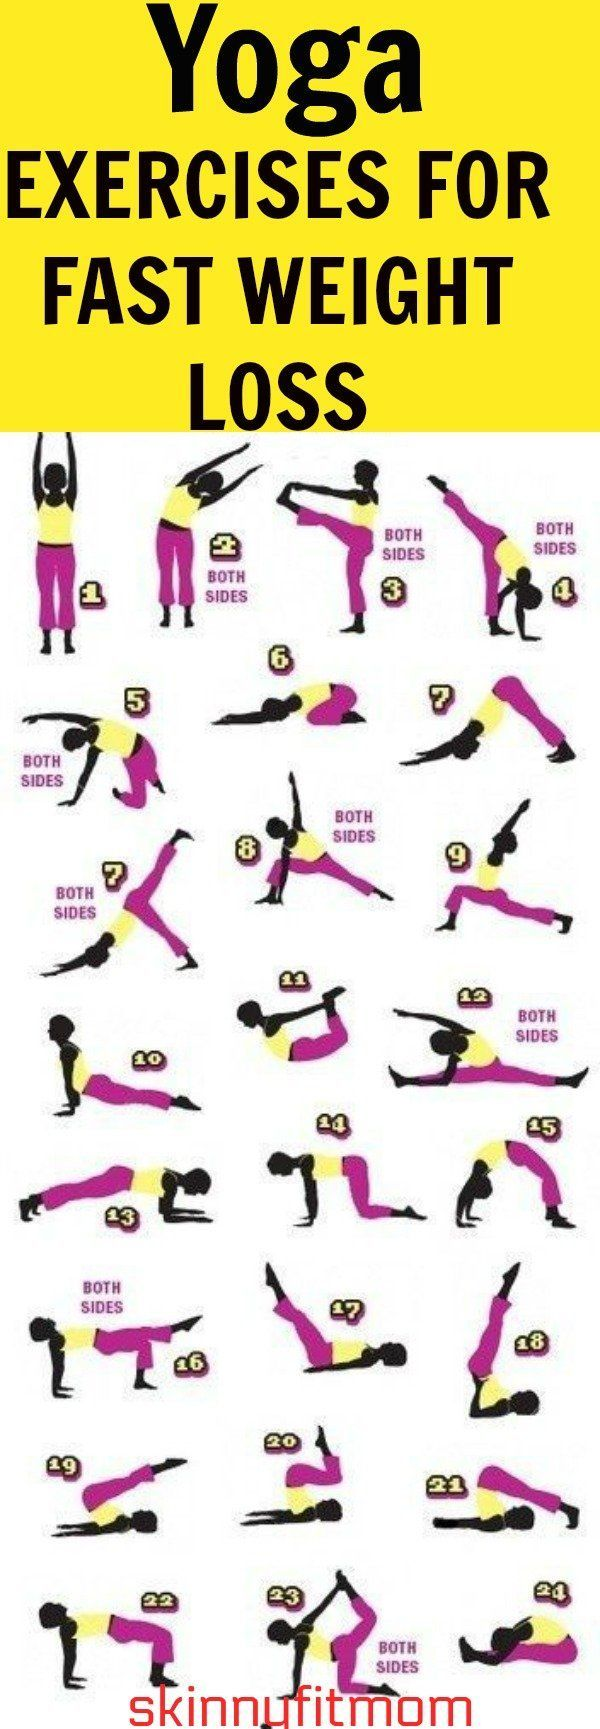 5 Best Yoga Exercises For Fast Weight Loss & Flat Belly